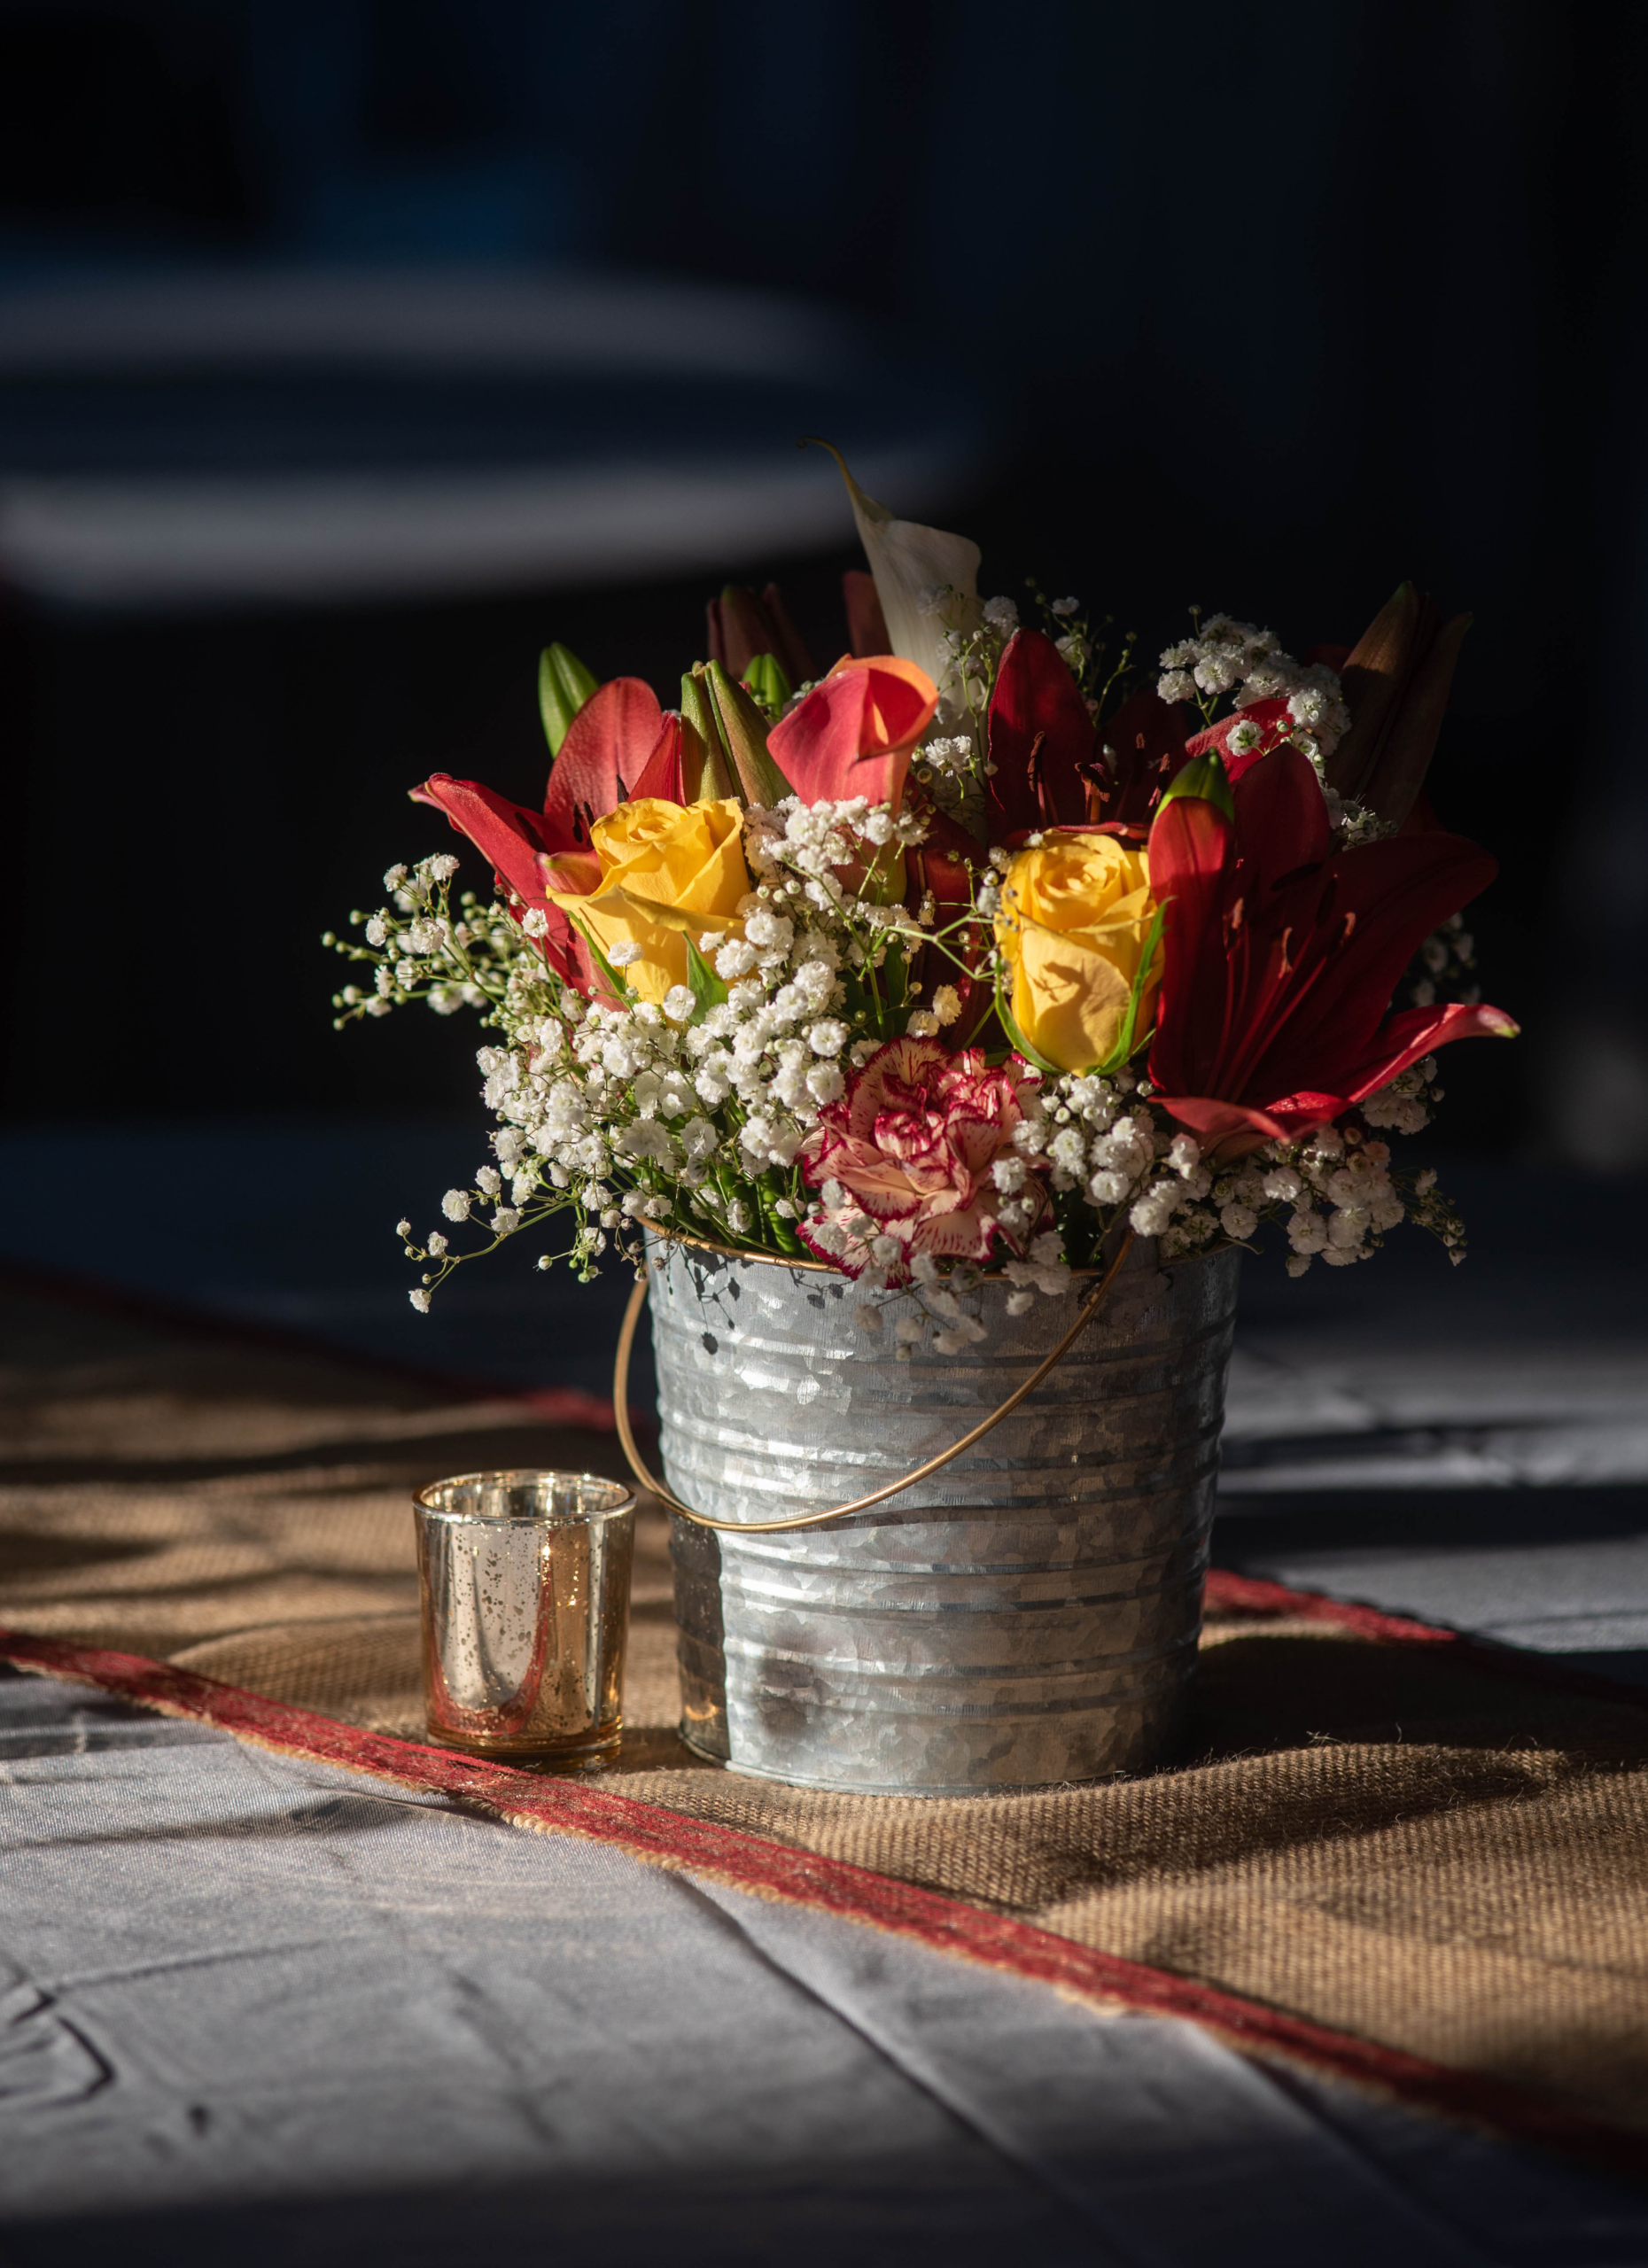 yellow and tangerine colored roses arranged with baby's breath in a galvanized pail on a table scape with soft lighting coming in from the left - Covid-19 Weddings